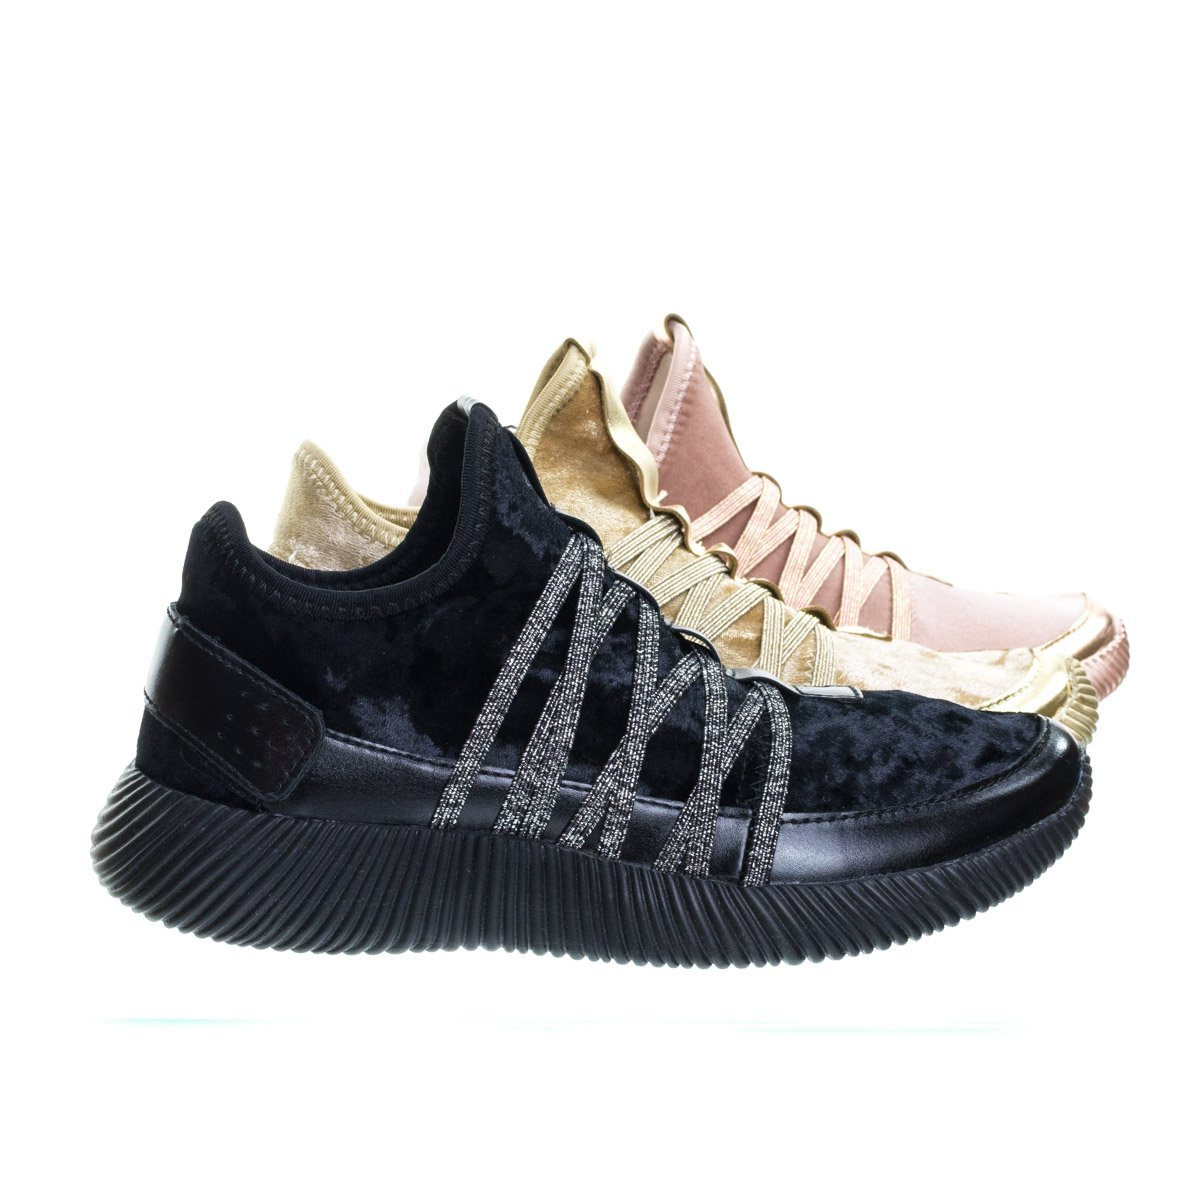 Forever Link Women's Remy-18 Glitter Sneakers | Fashion Sneakers | Sparkly Shoes for Women |Black 8